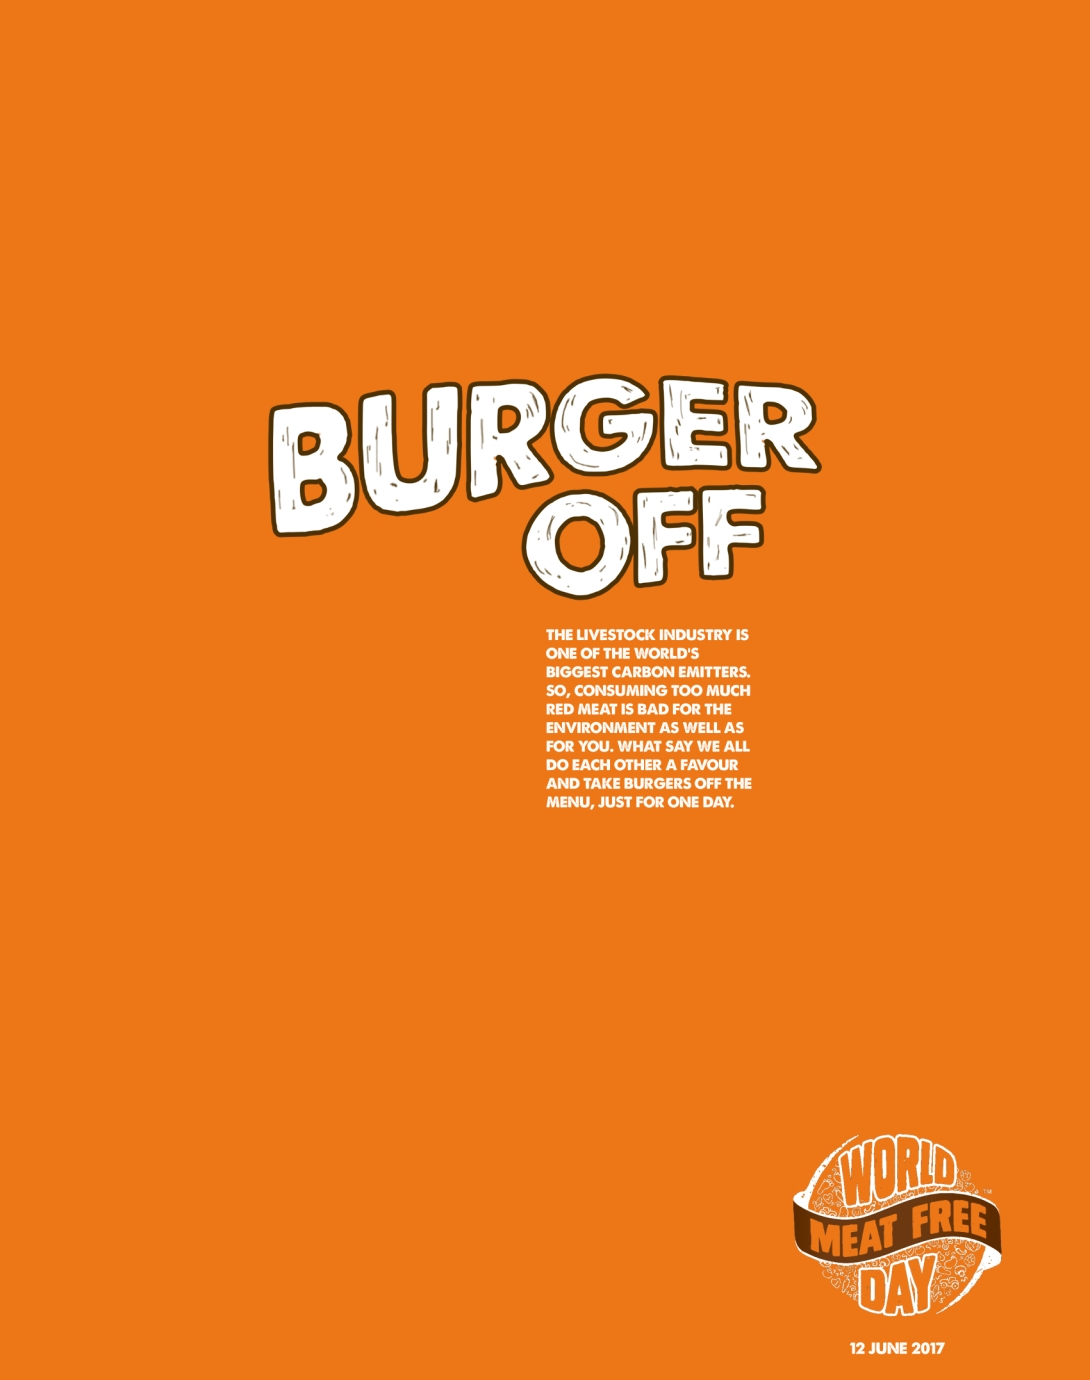 Advertising concept for world meat free day - burger off